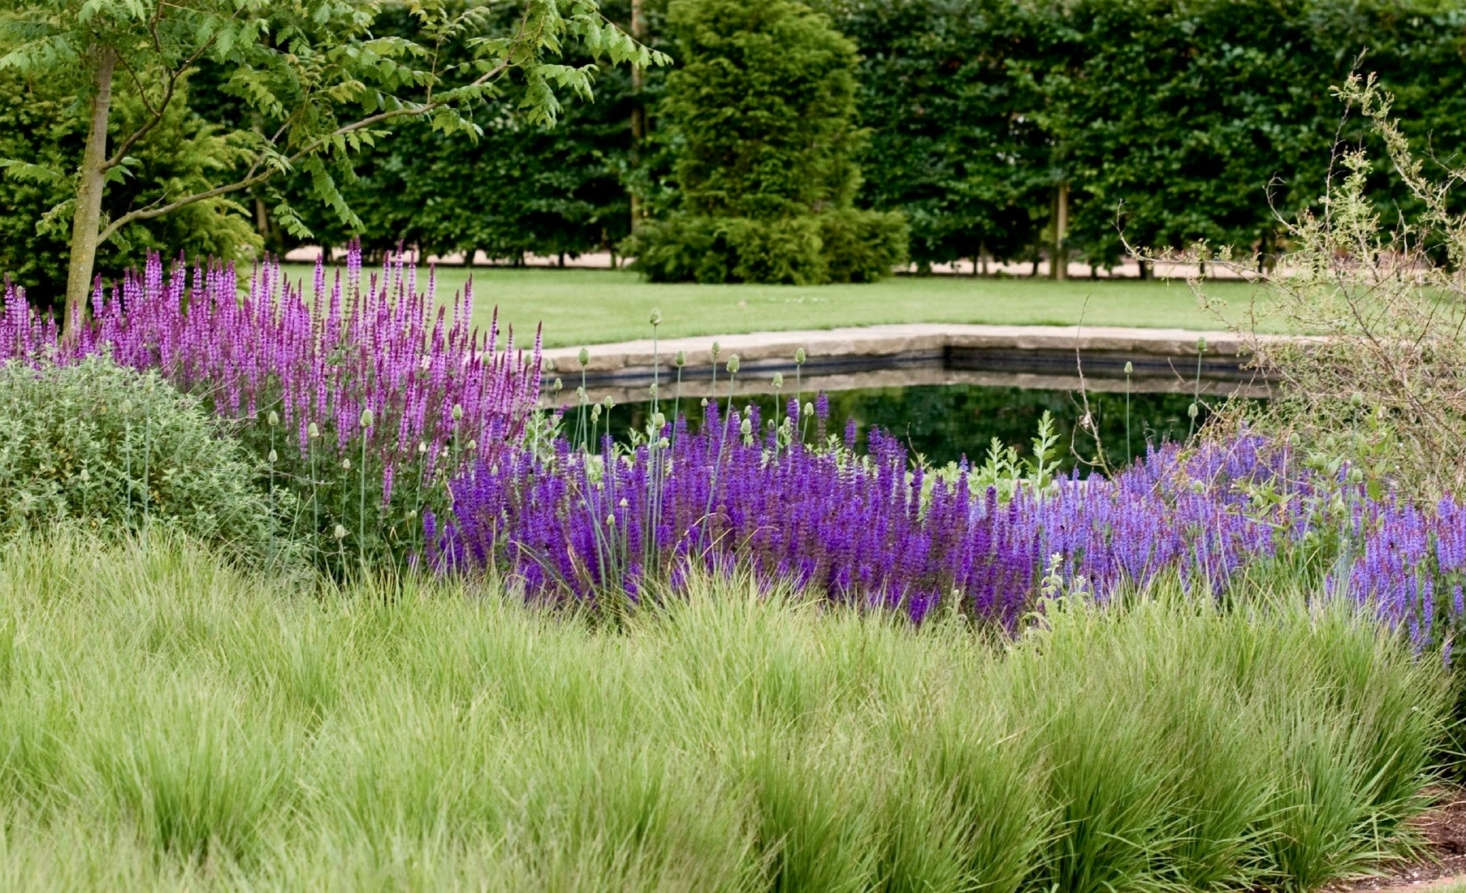 At Scampston Hall in Yorkshire, the gardens by designer Piet Oudolf rely on perennial grasses for texture and contrast to deeply colored perennials such as salvias. See more of Scampston in Garden Visit: Dutch Master Piet Oudolf in Yorkshire. Photograph by Alhsrc=